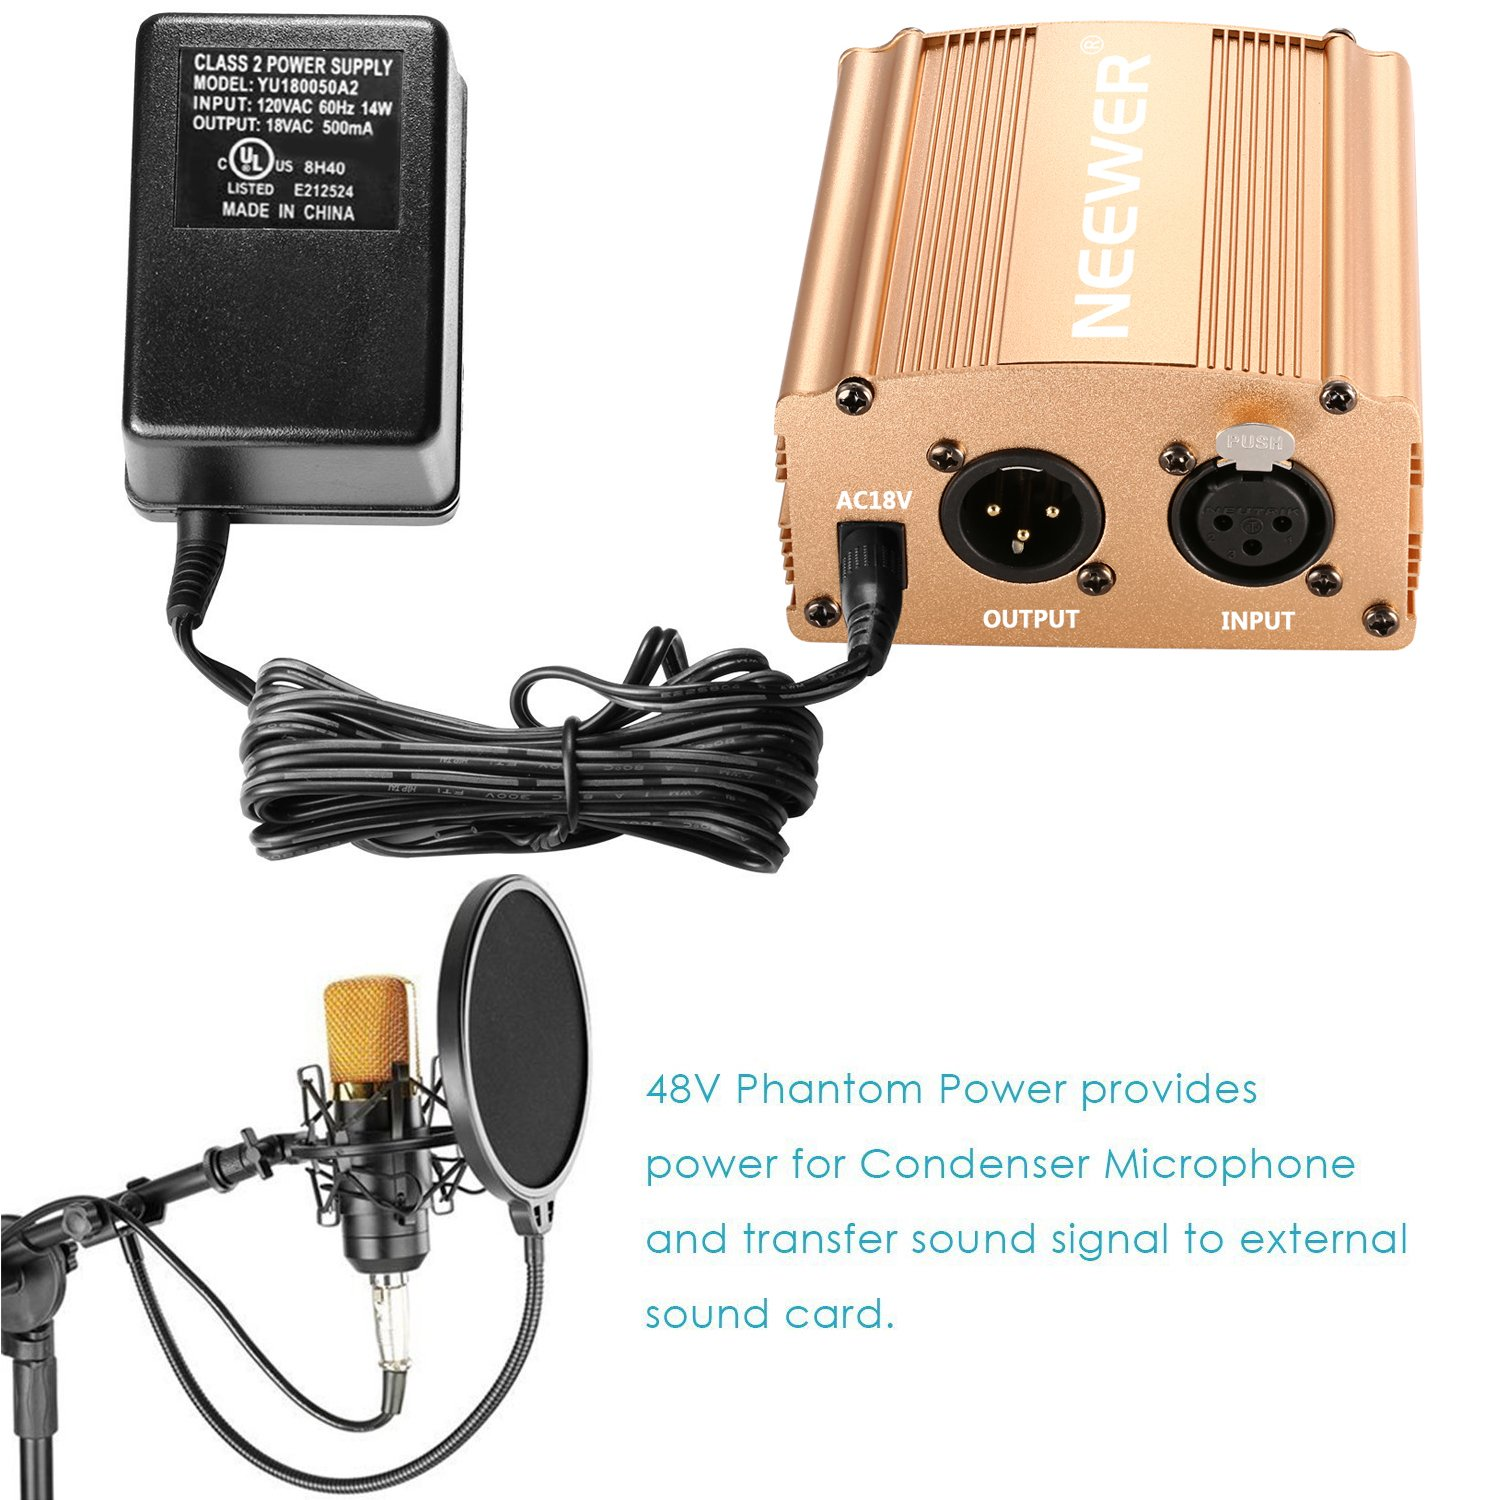 Neewer 1-Channel 48V Phantom Power Supply with Adapter and XLR Audio Cable for Any Condenser Microphone Music Recording Equipment (Gold) by Neewer